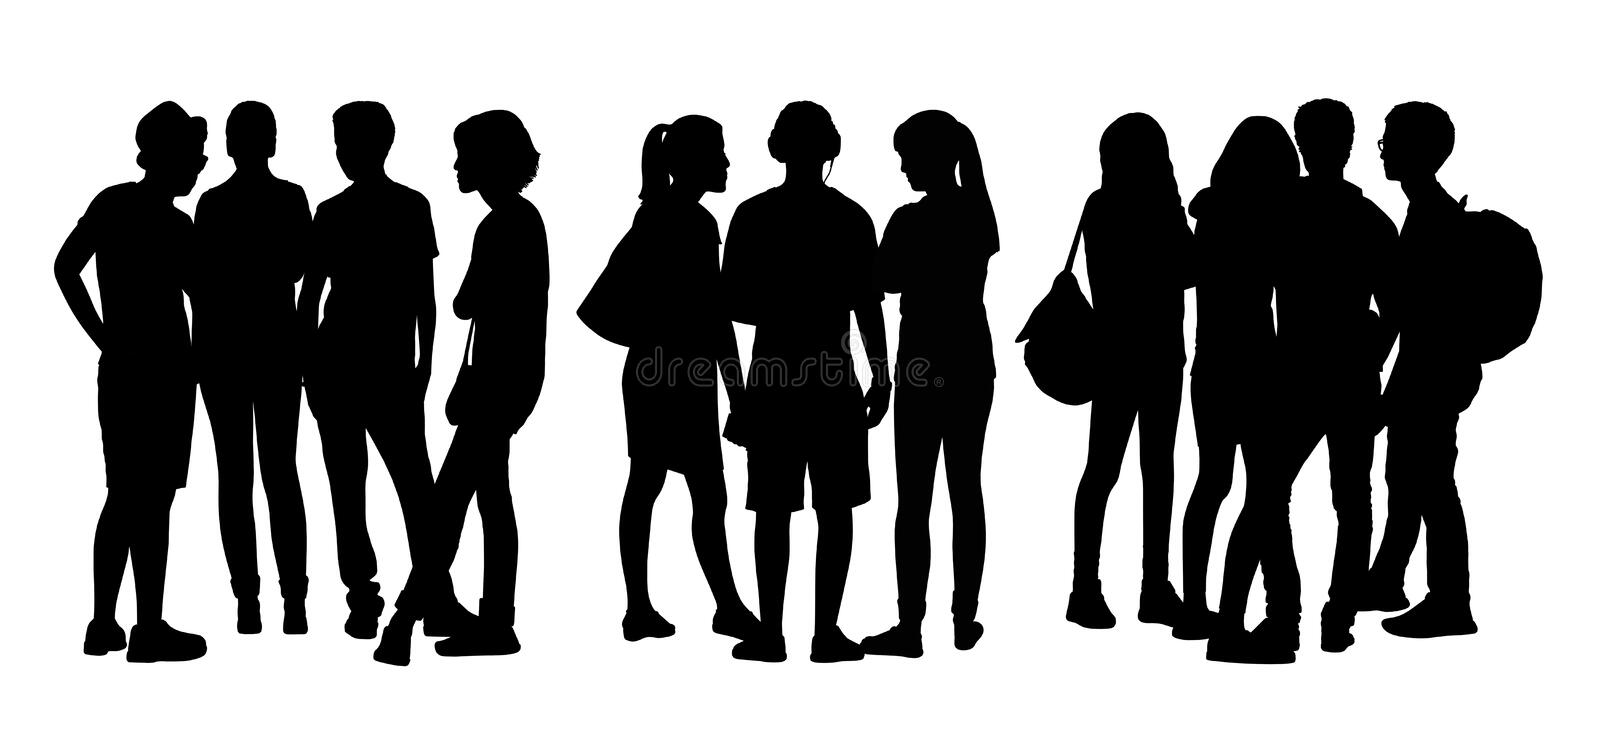 People talking to each other silhouettes set 6 vector illustration